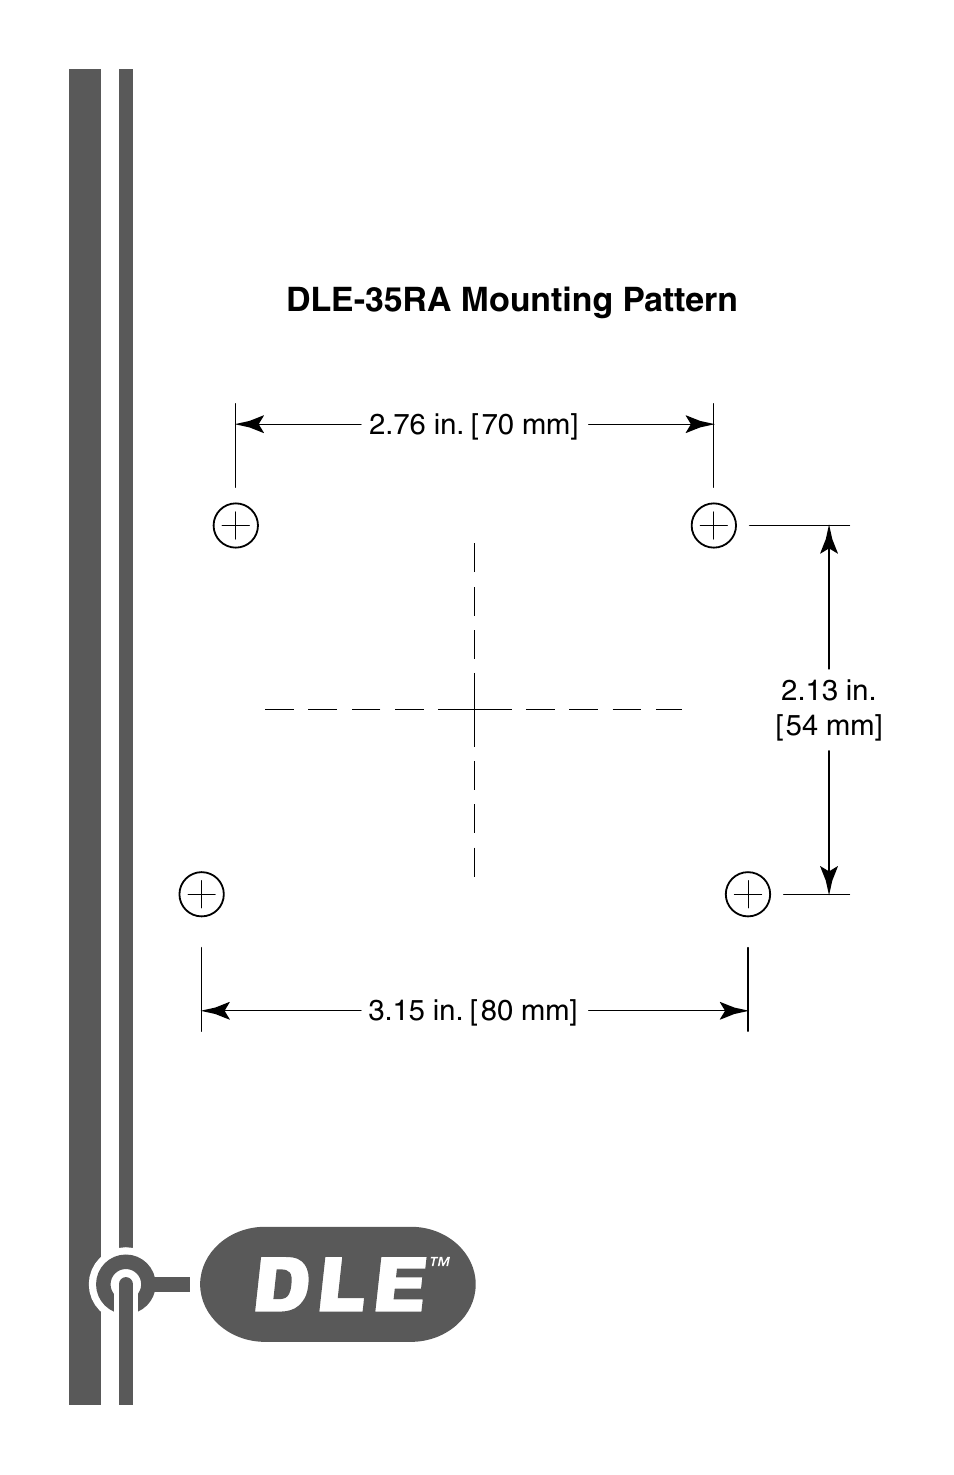 Dle-35ra mounting pattern | DLE 35RA User Manual | Page 24 / 24